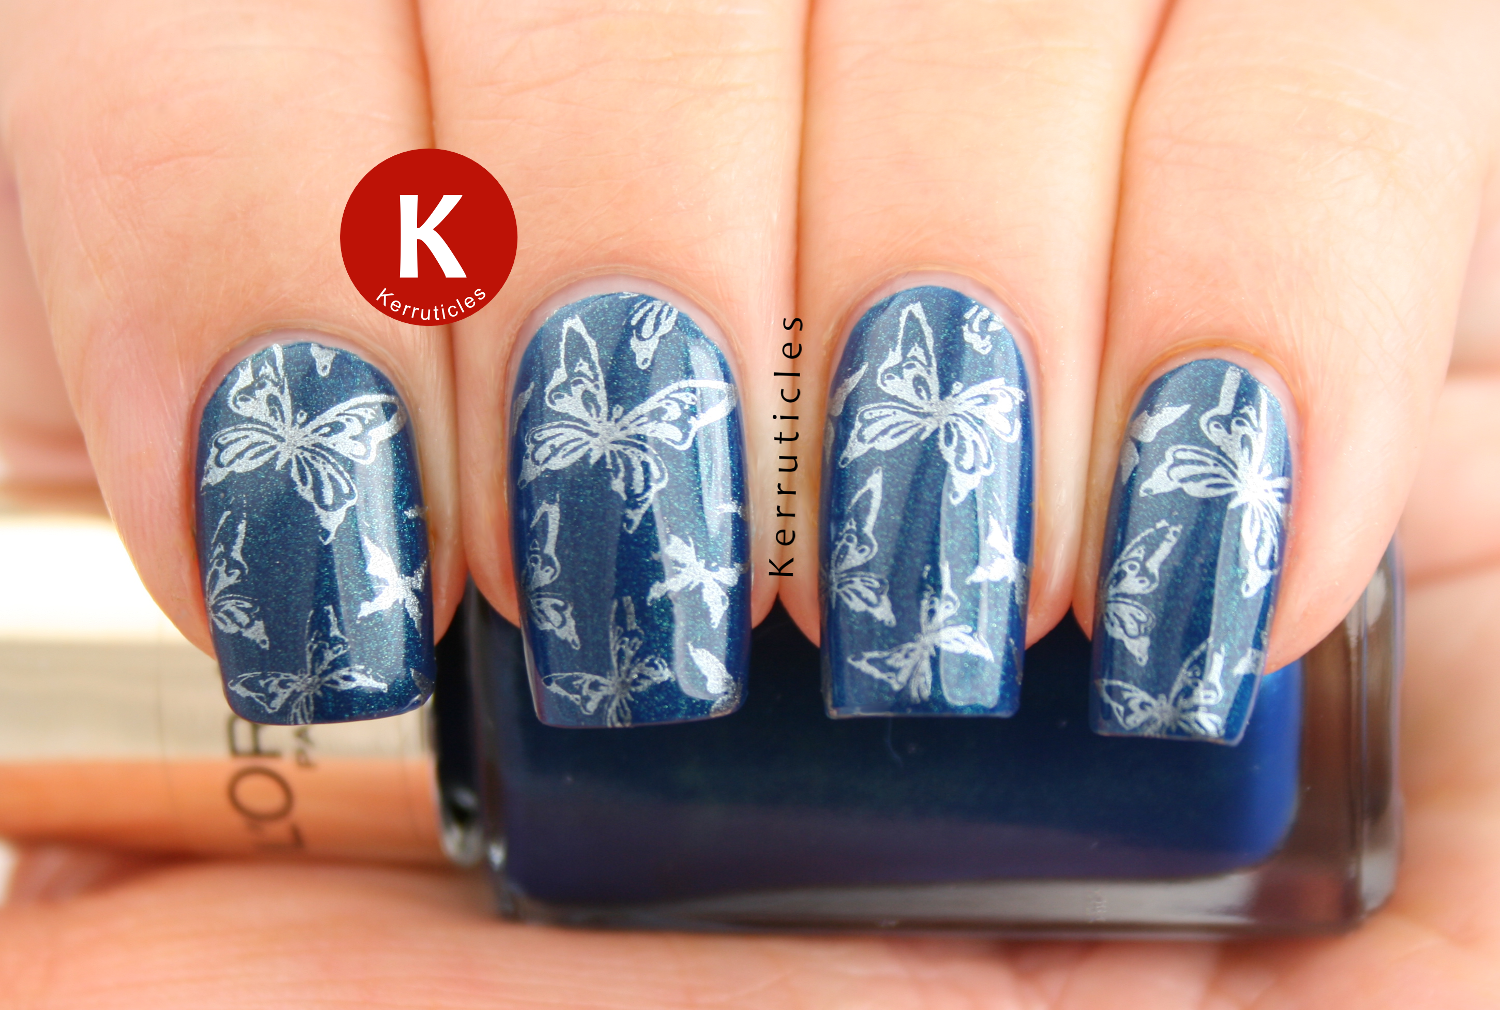 L'Oreal Magic Croisette stamped with butterflies using Saphir Treasure and Bundle Monster BM-307